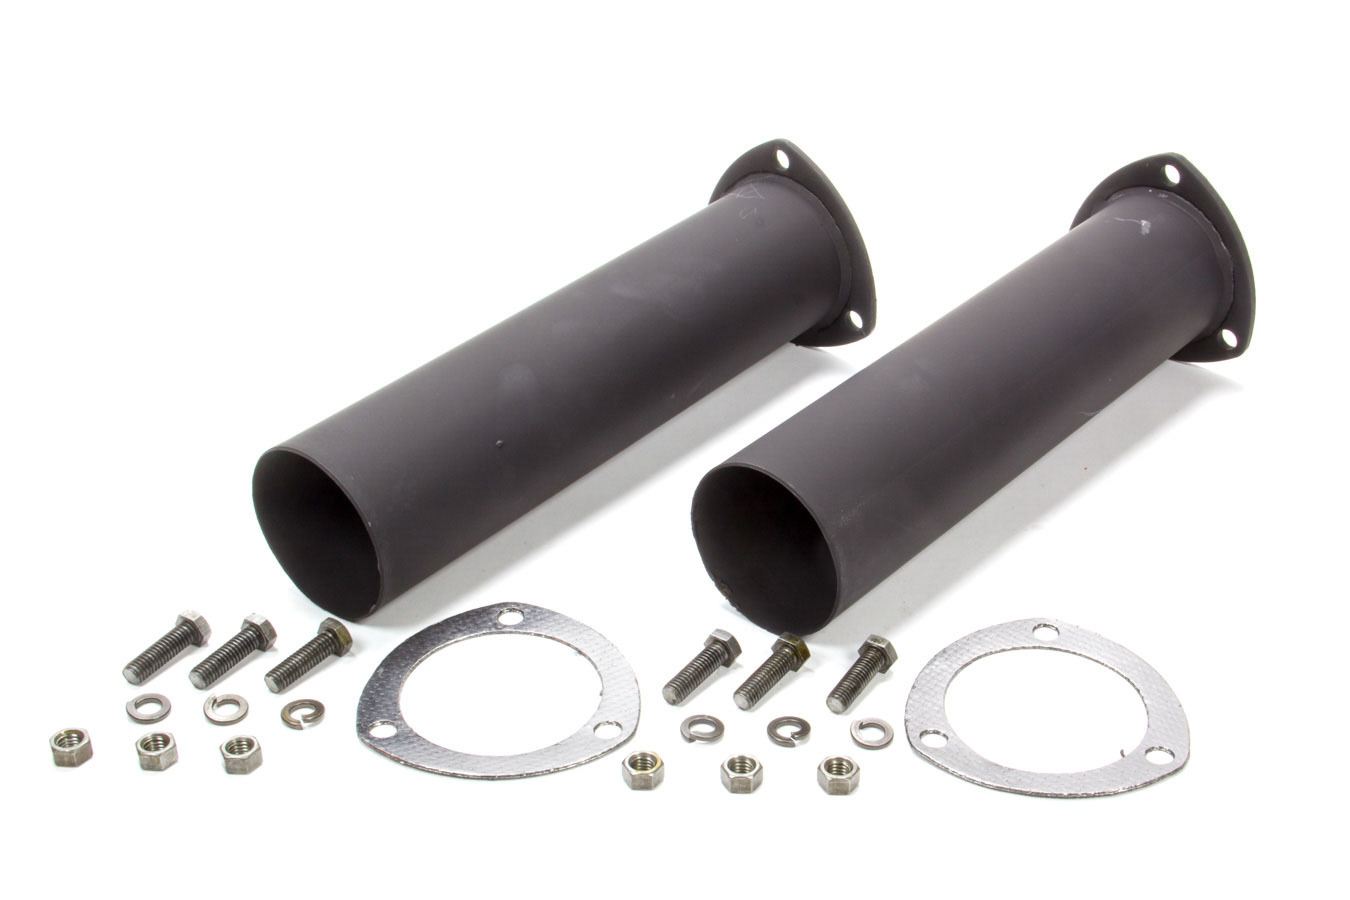 Afterburner Thrust Tubes - 3in x 12in (pair)